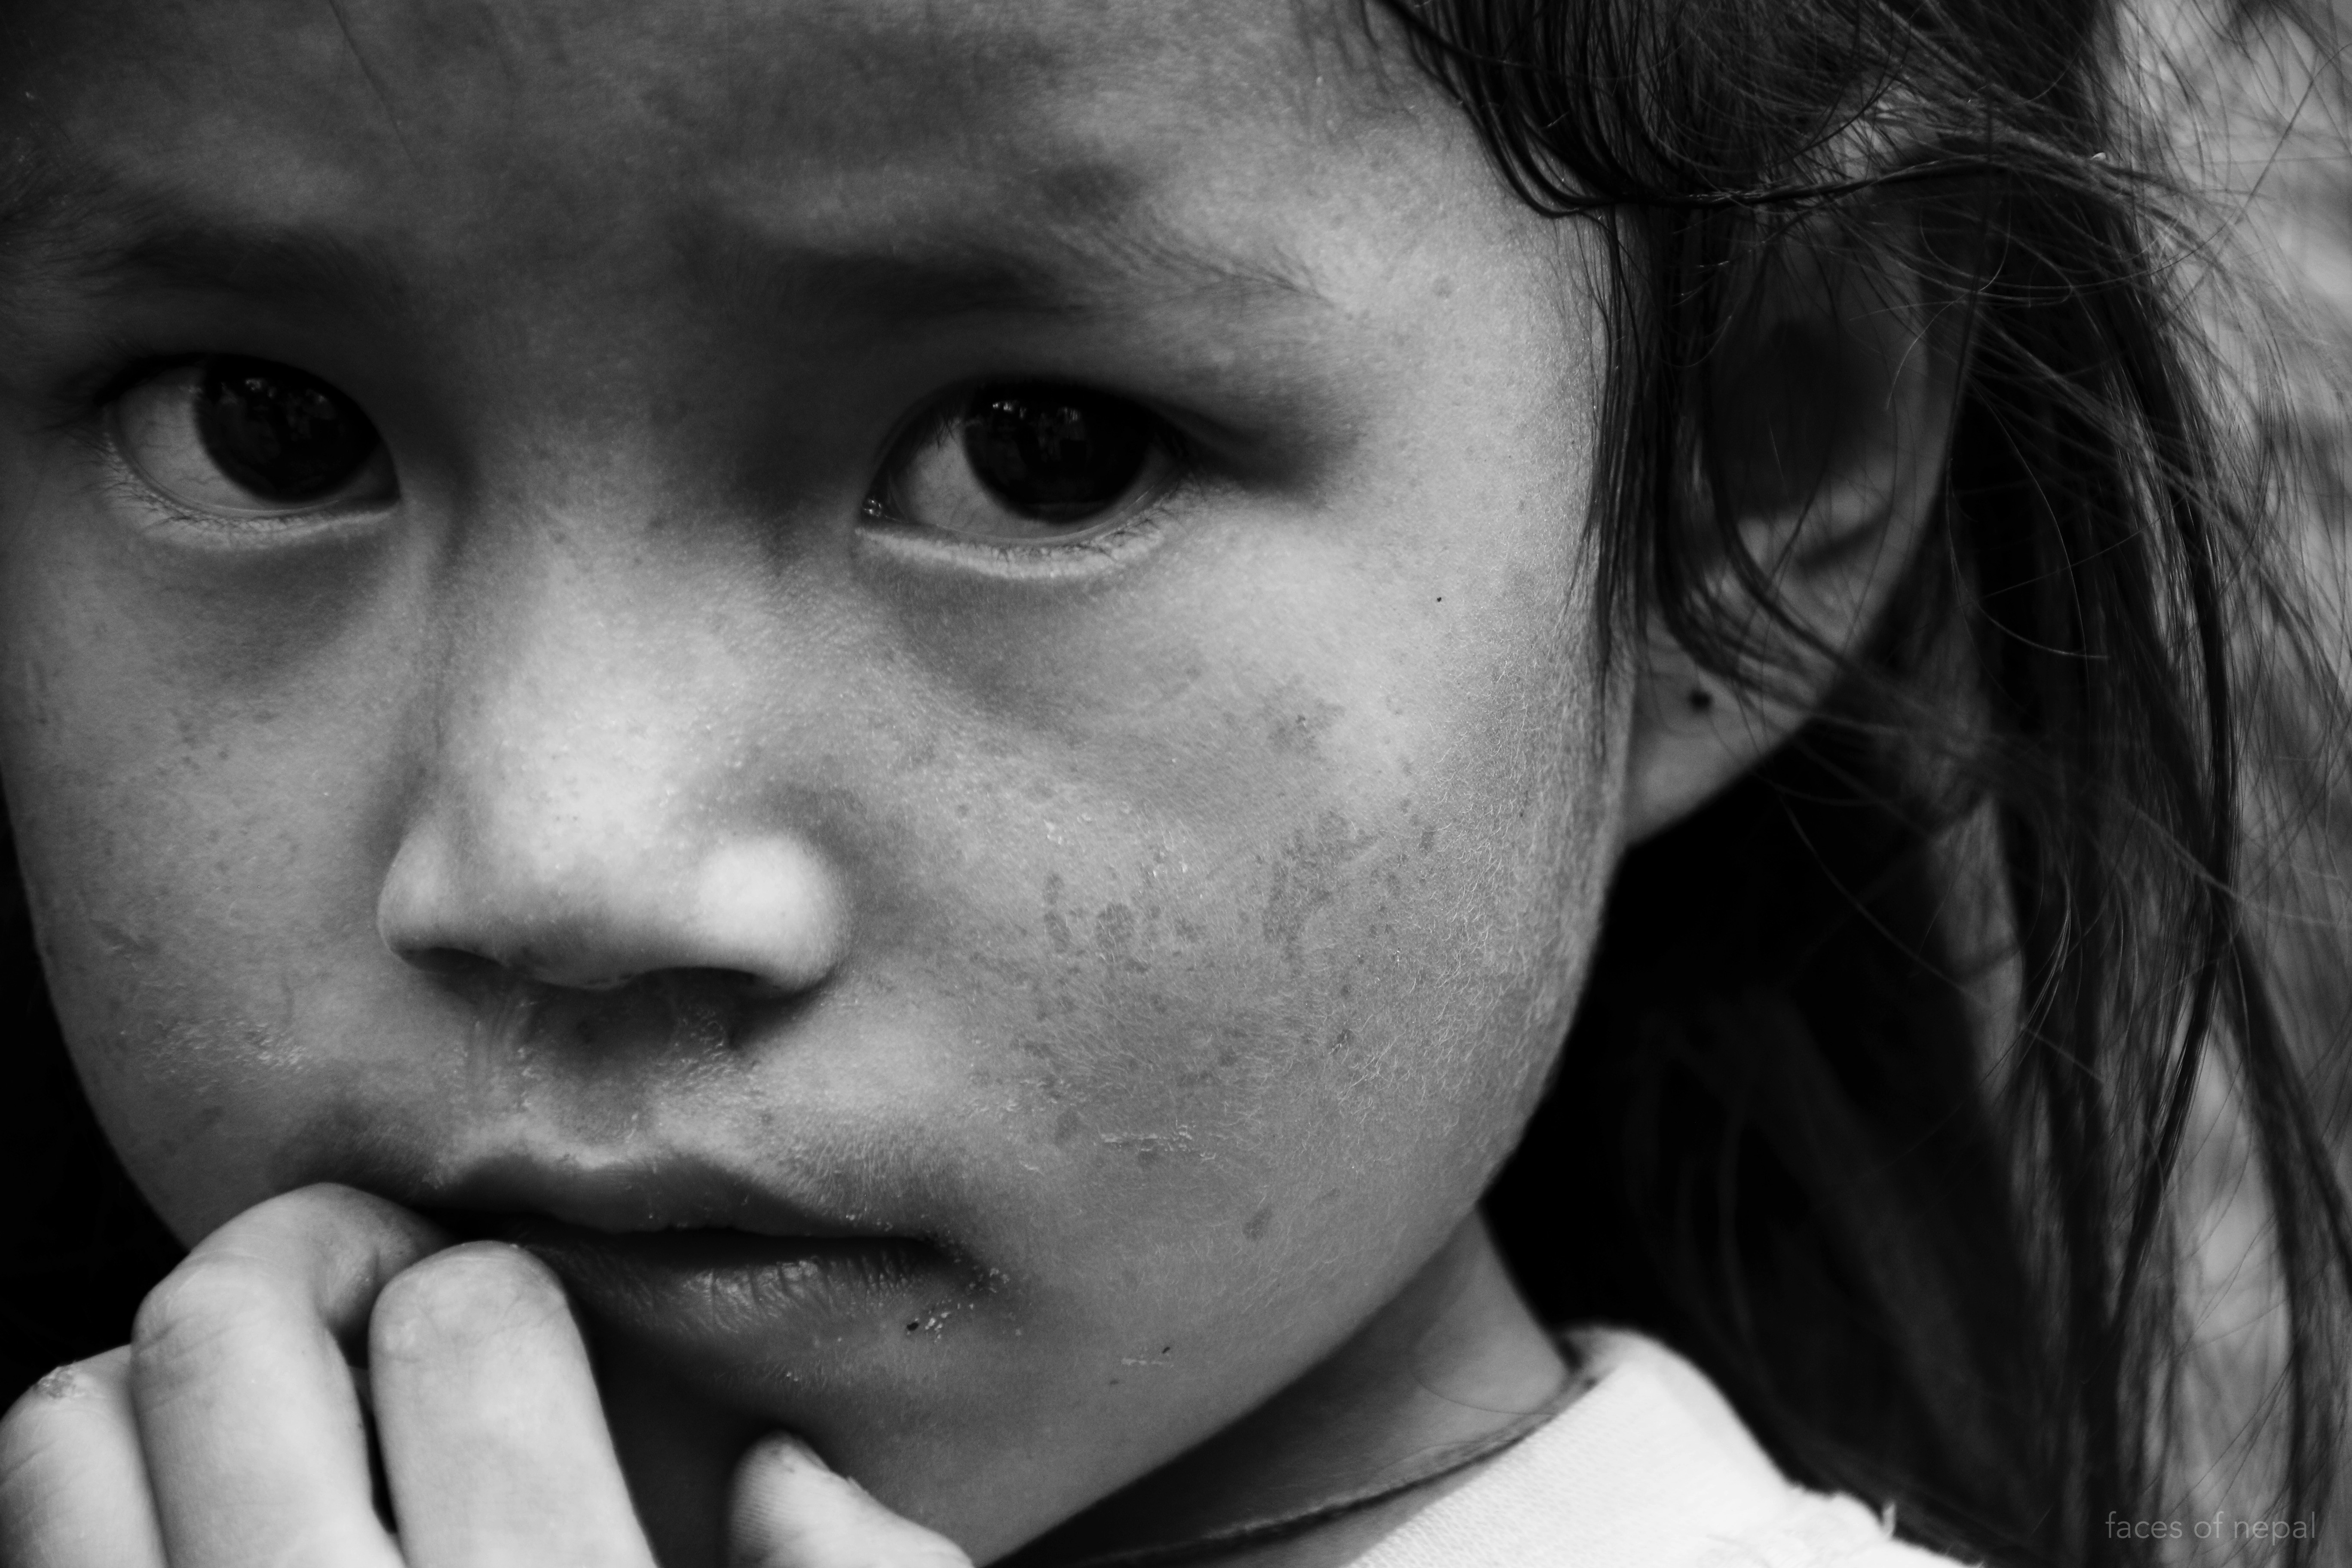 Faces Of Nepal: Learning About Love, Life, And Hope | HuffPost